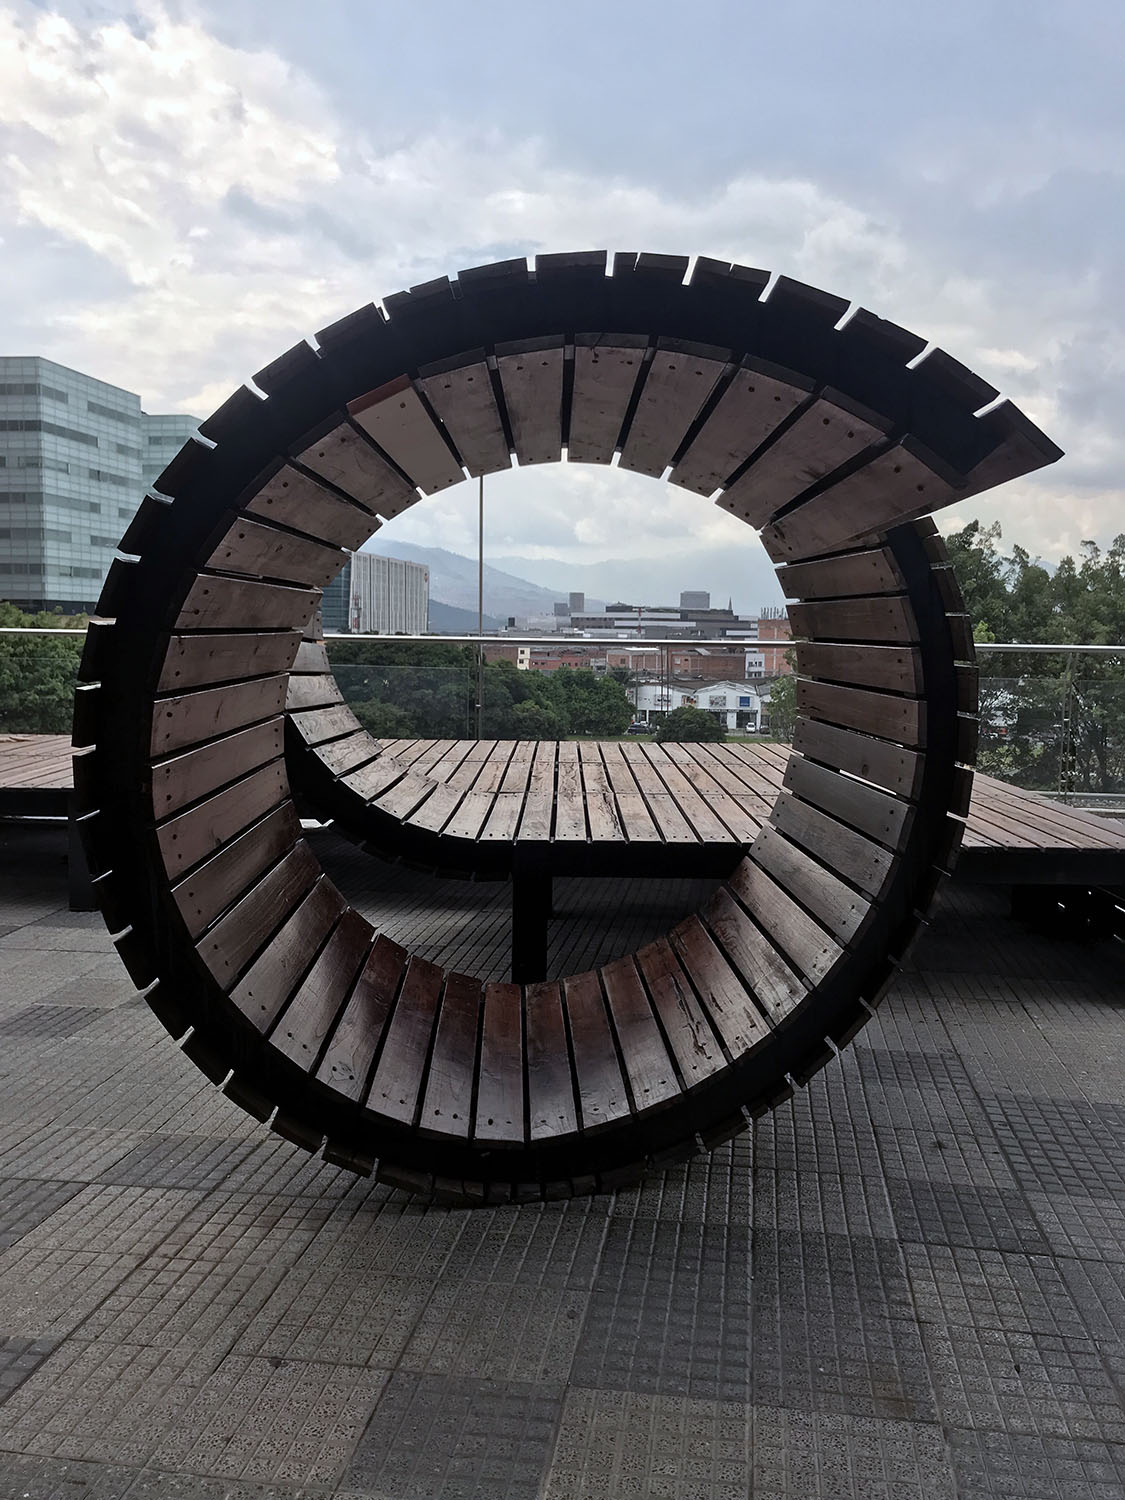 circular sculpture with the mountains behind it